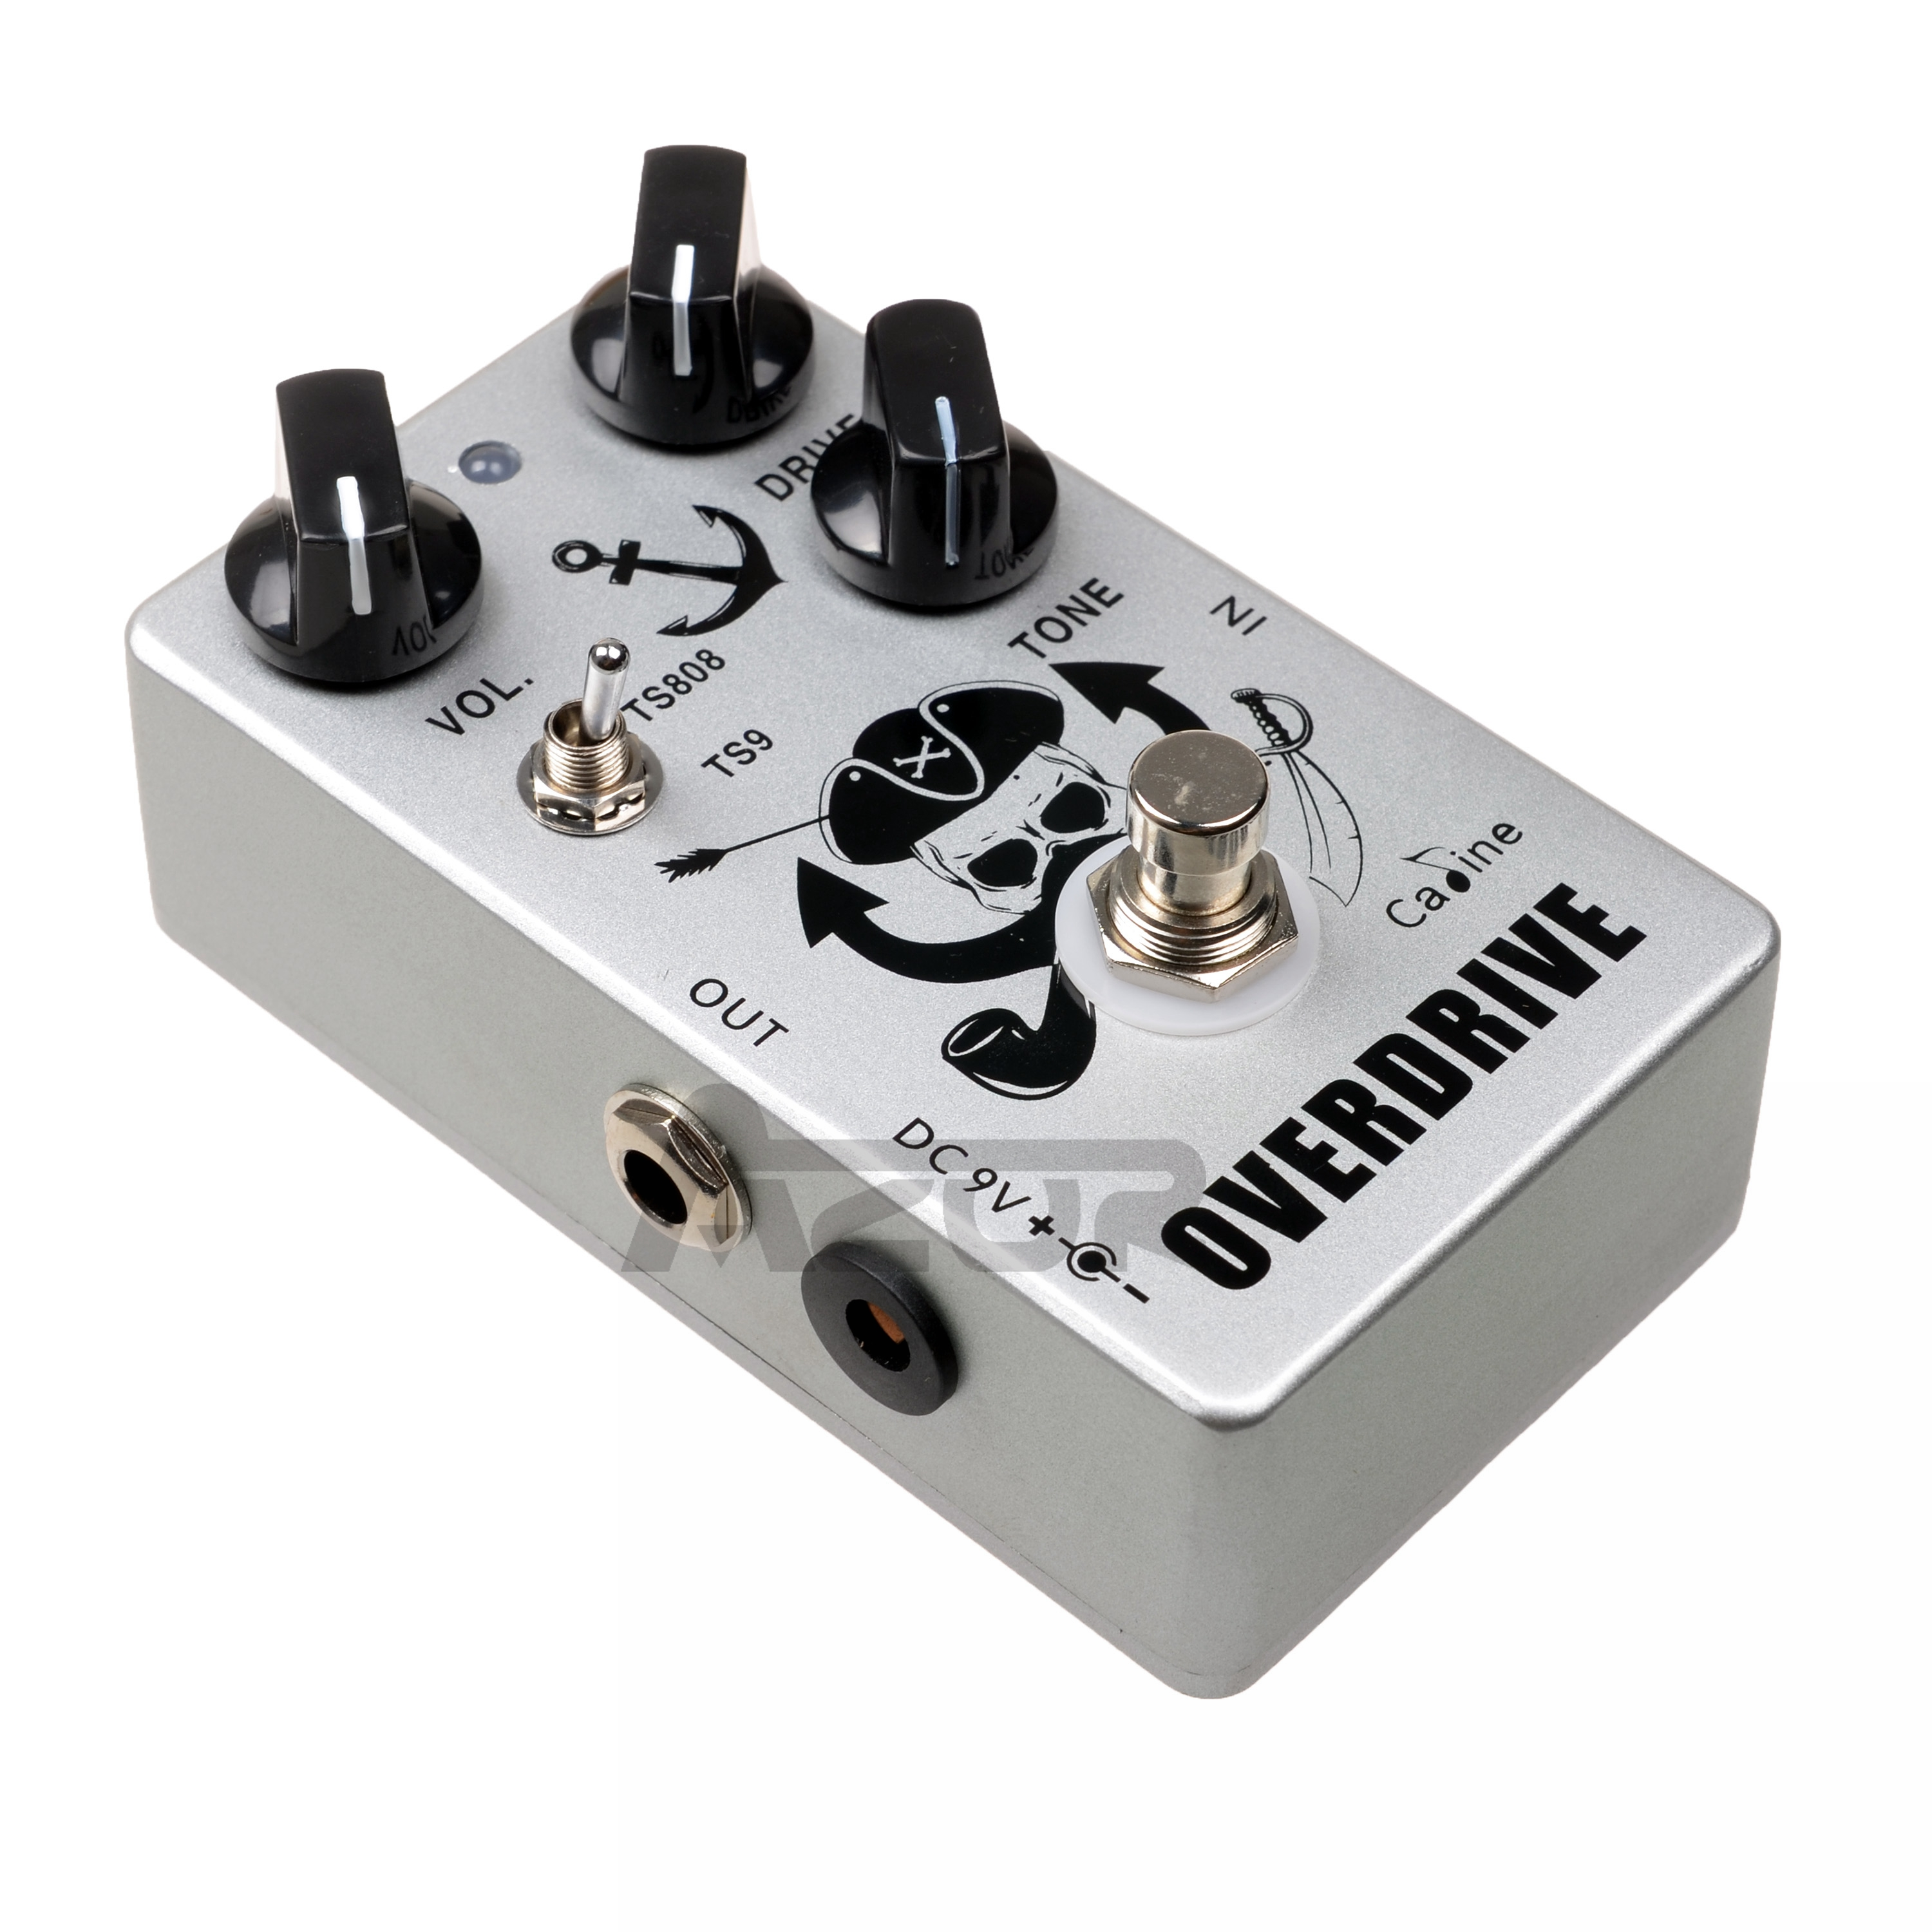 CP-76 Captain Silver Overdrive Guitar Pedal Tube Screamer 9V Effect Pedal TS808 Or TS9 Setting Guitar Accessories True Bypass